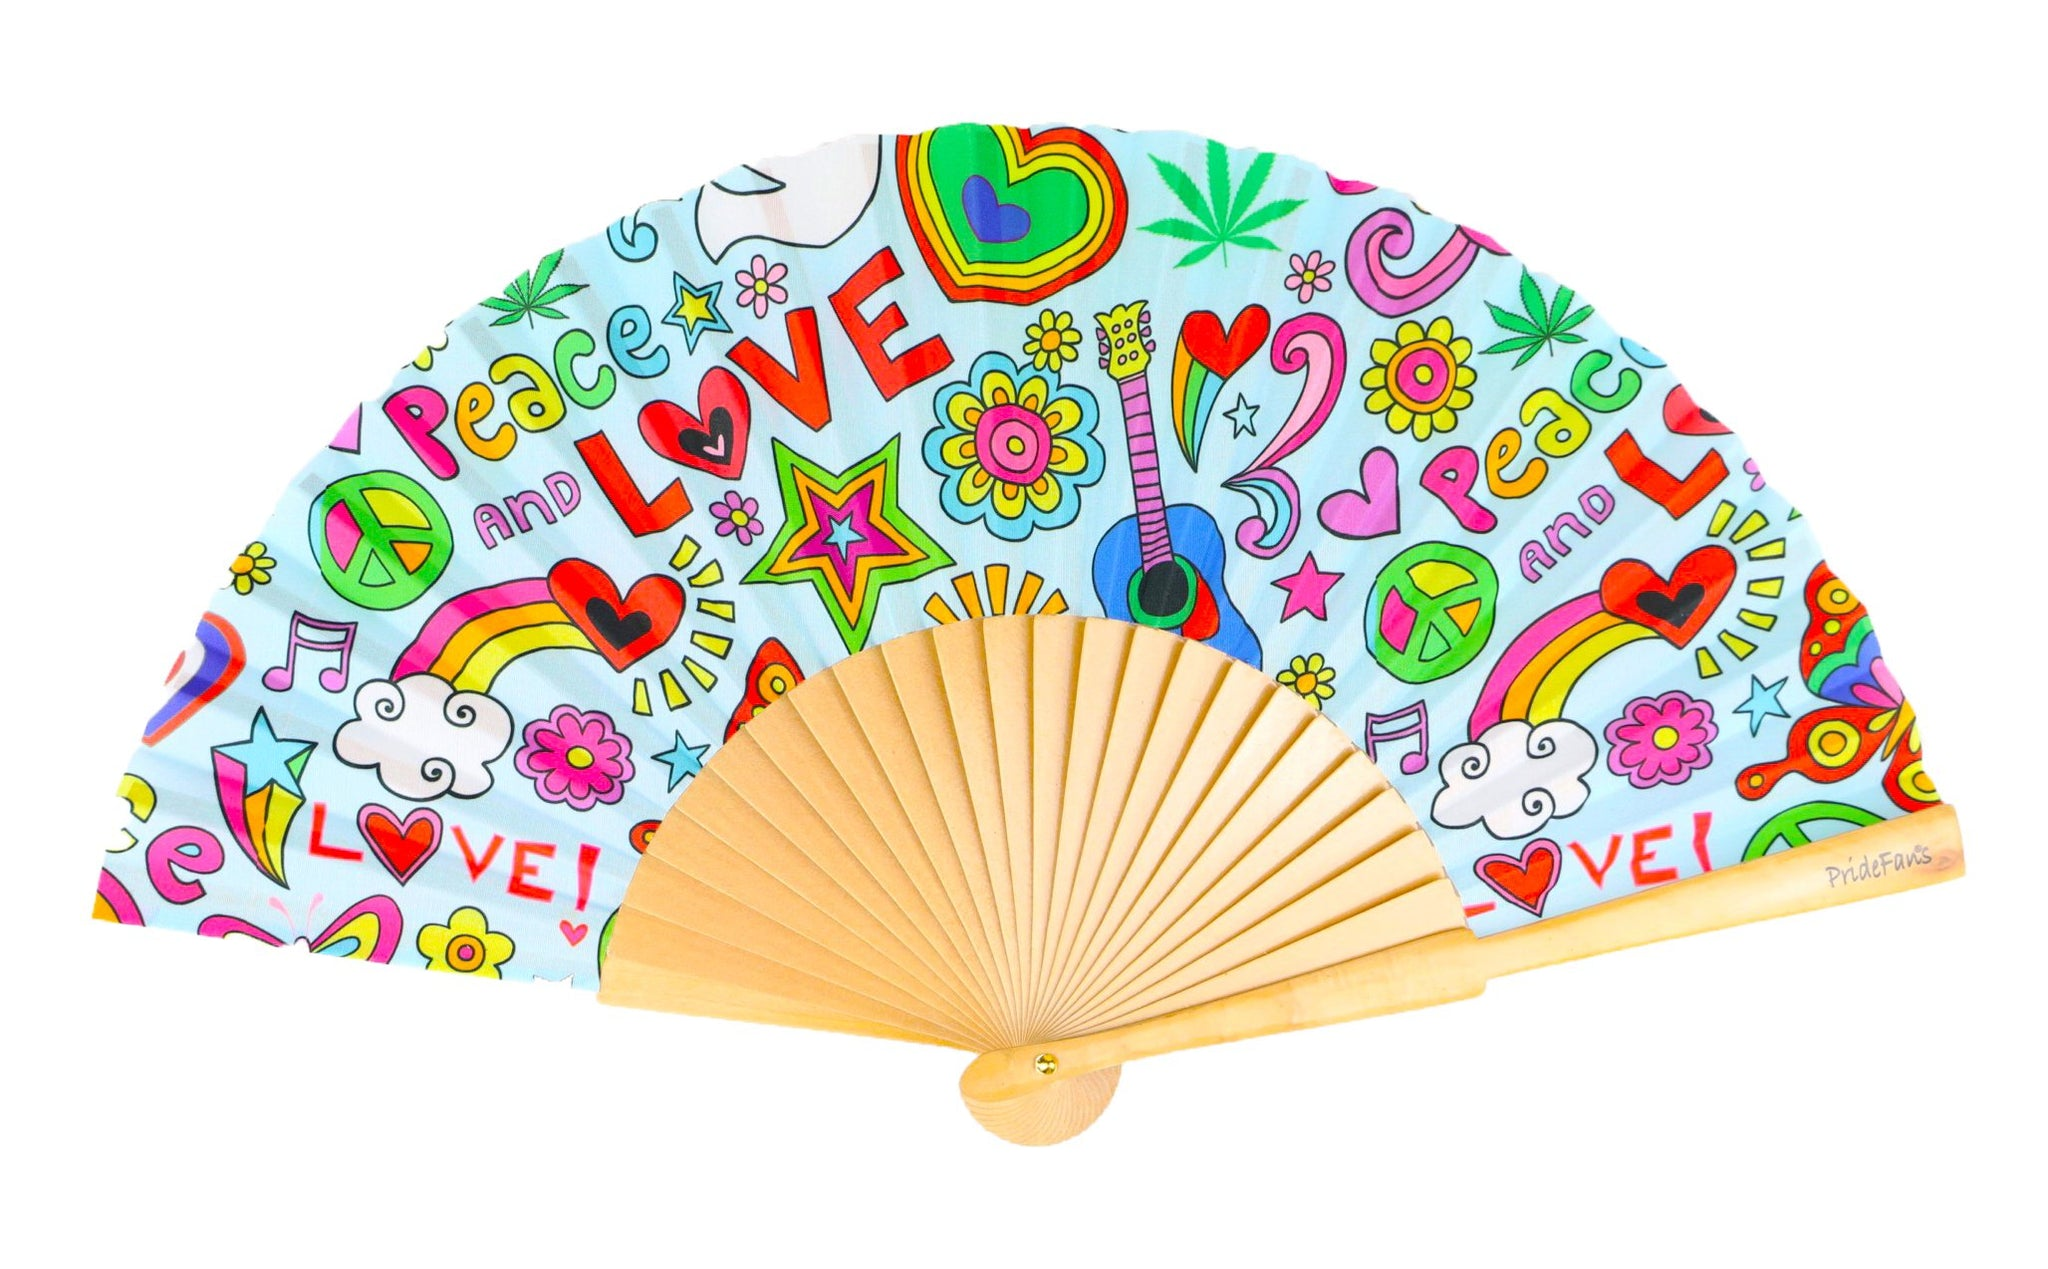 Pride Fans peace love rainbow gay hand fan